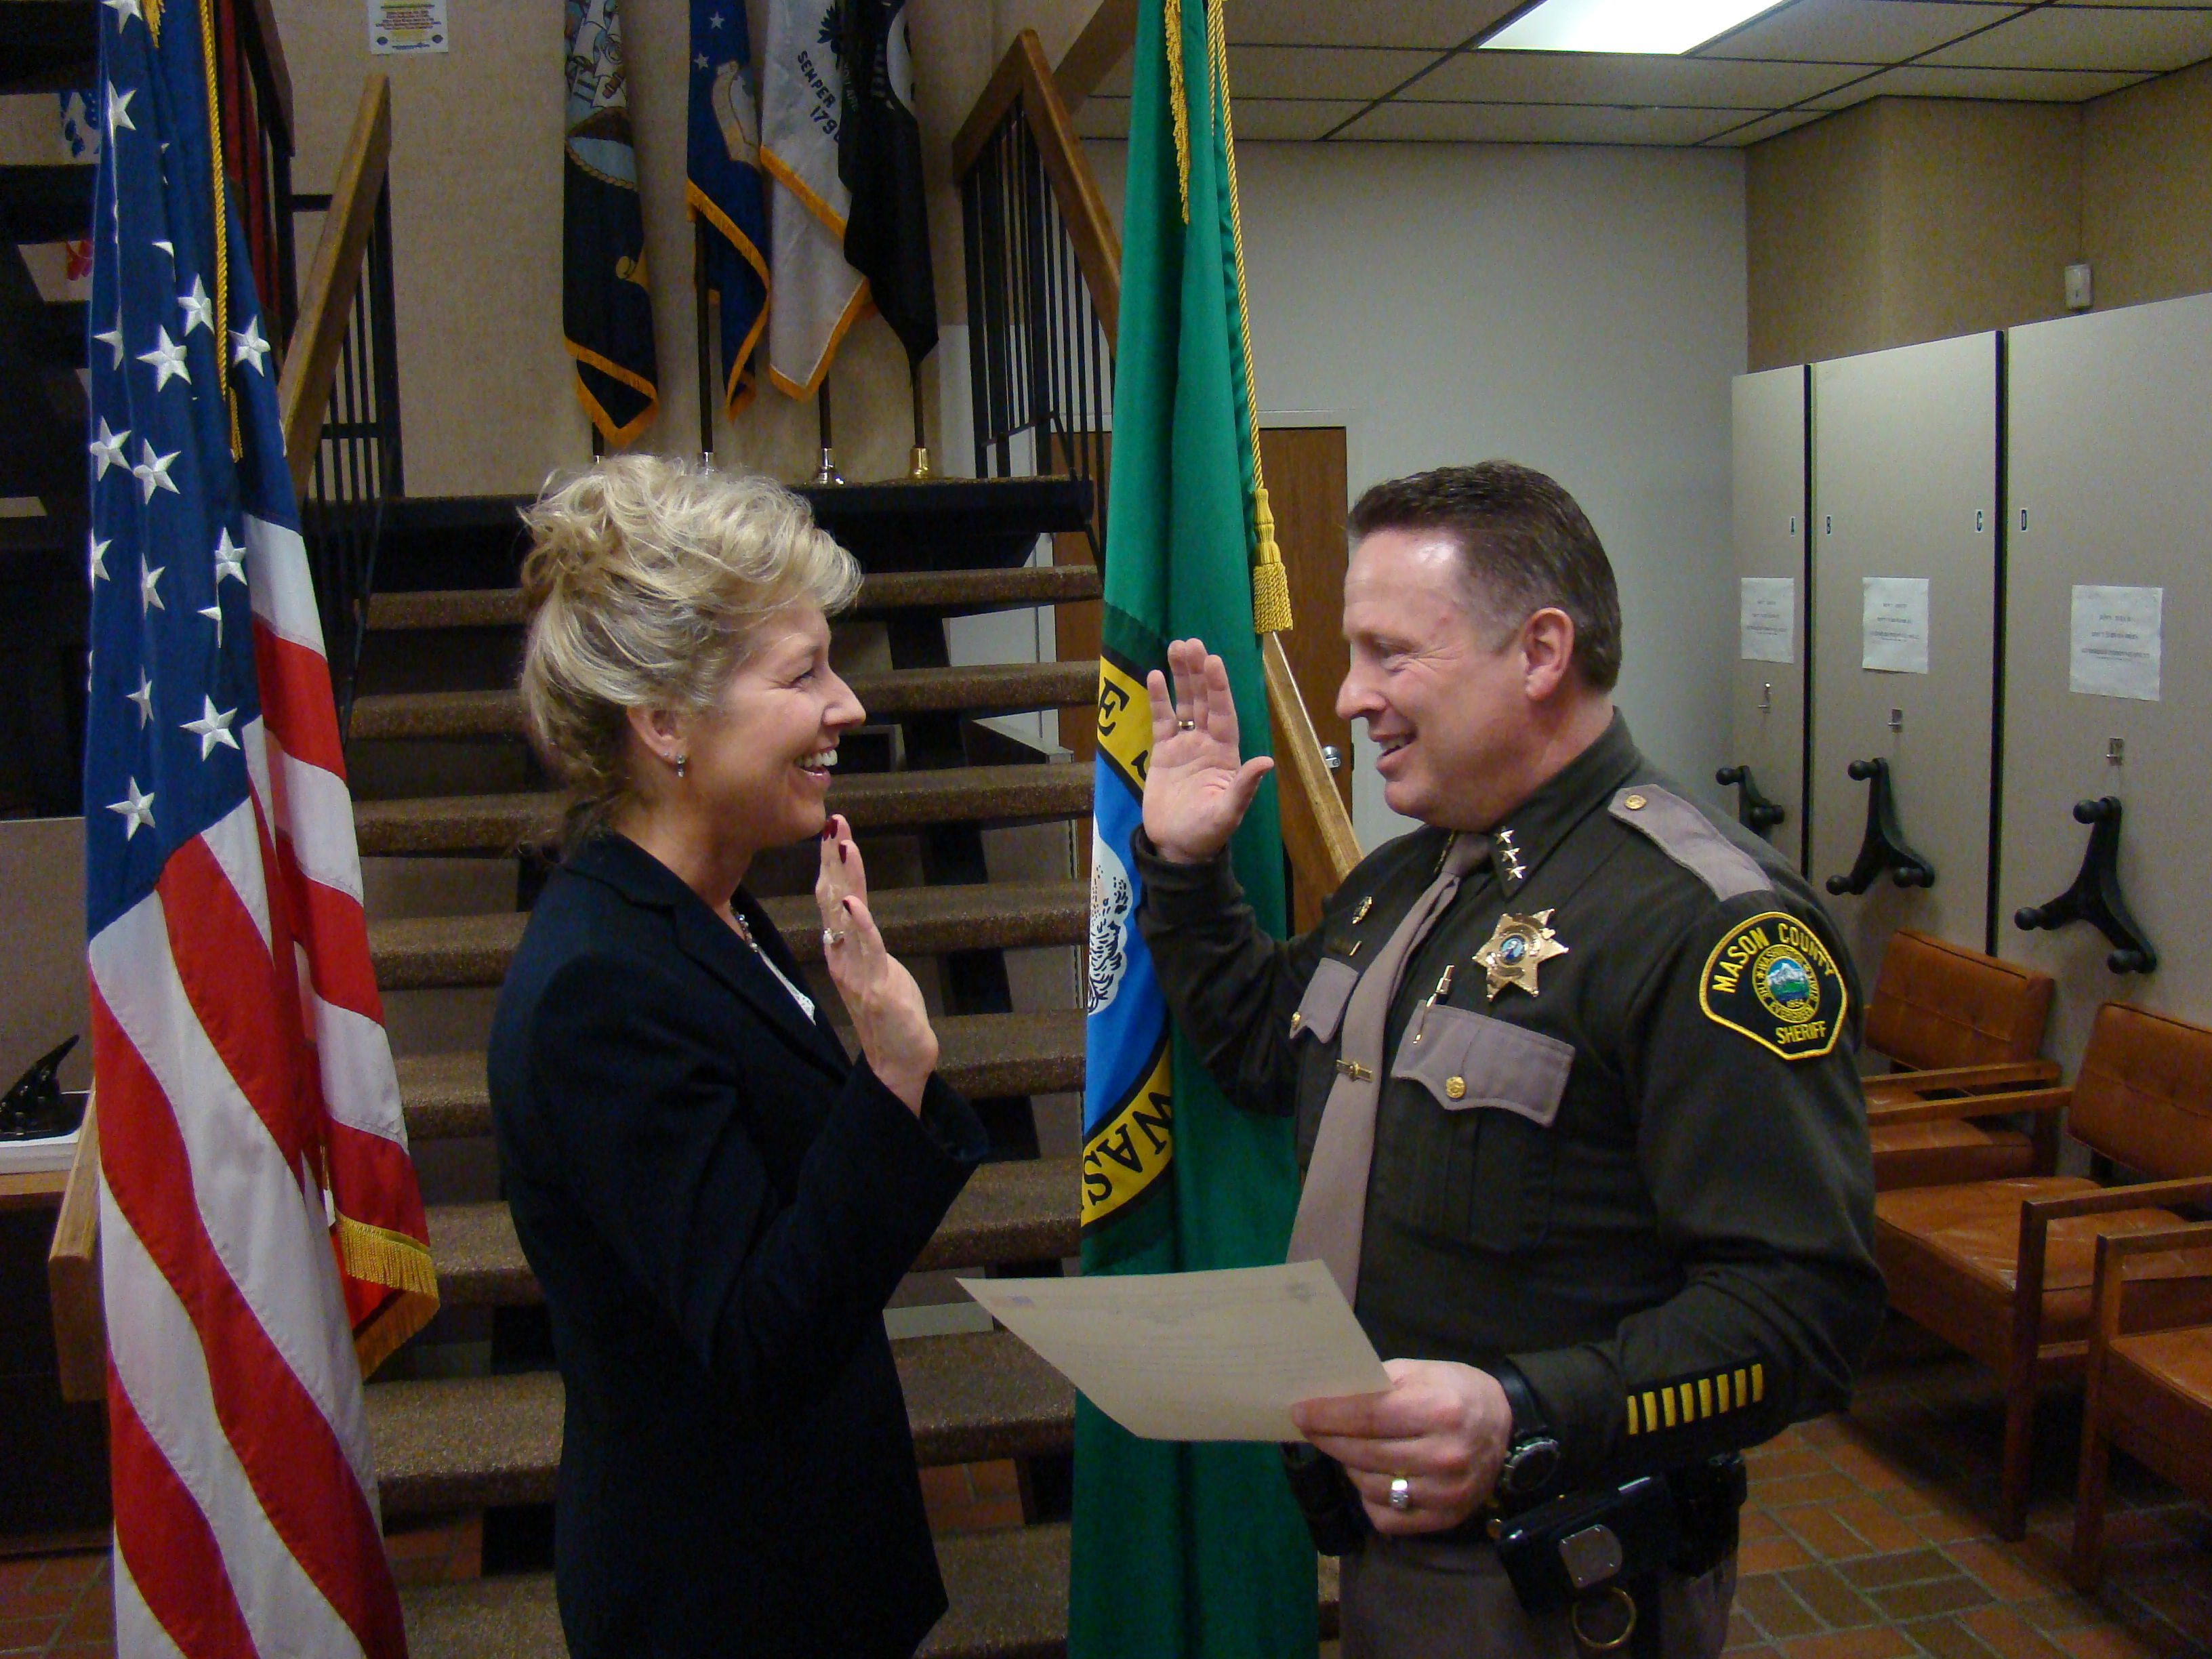 Sheriff Salisbury swearing in Chief Ehrich